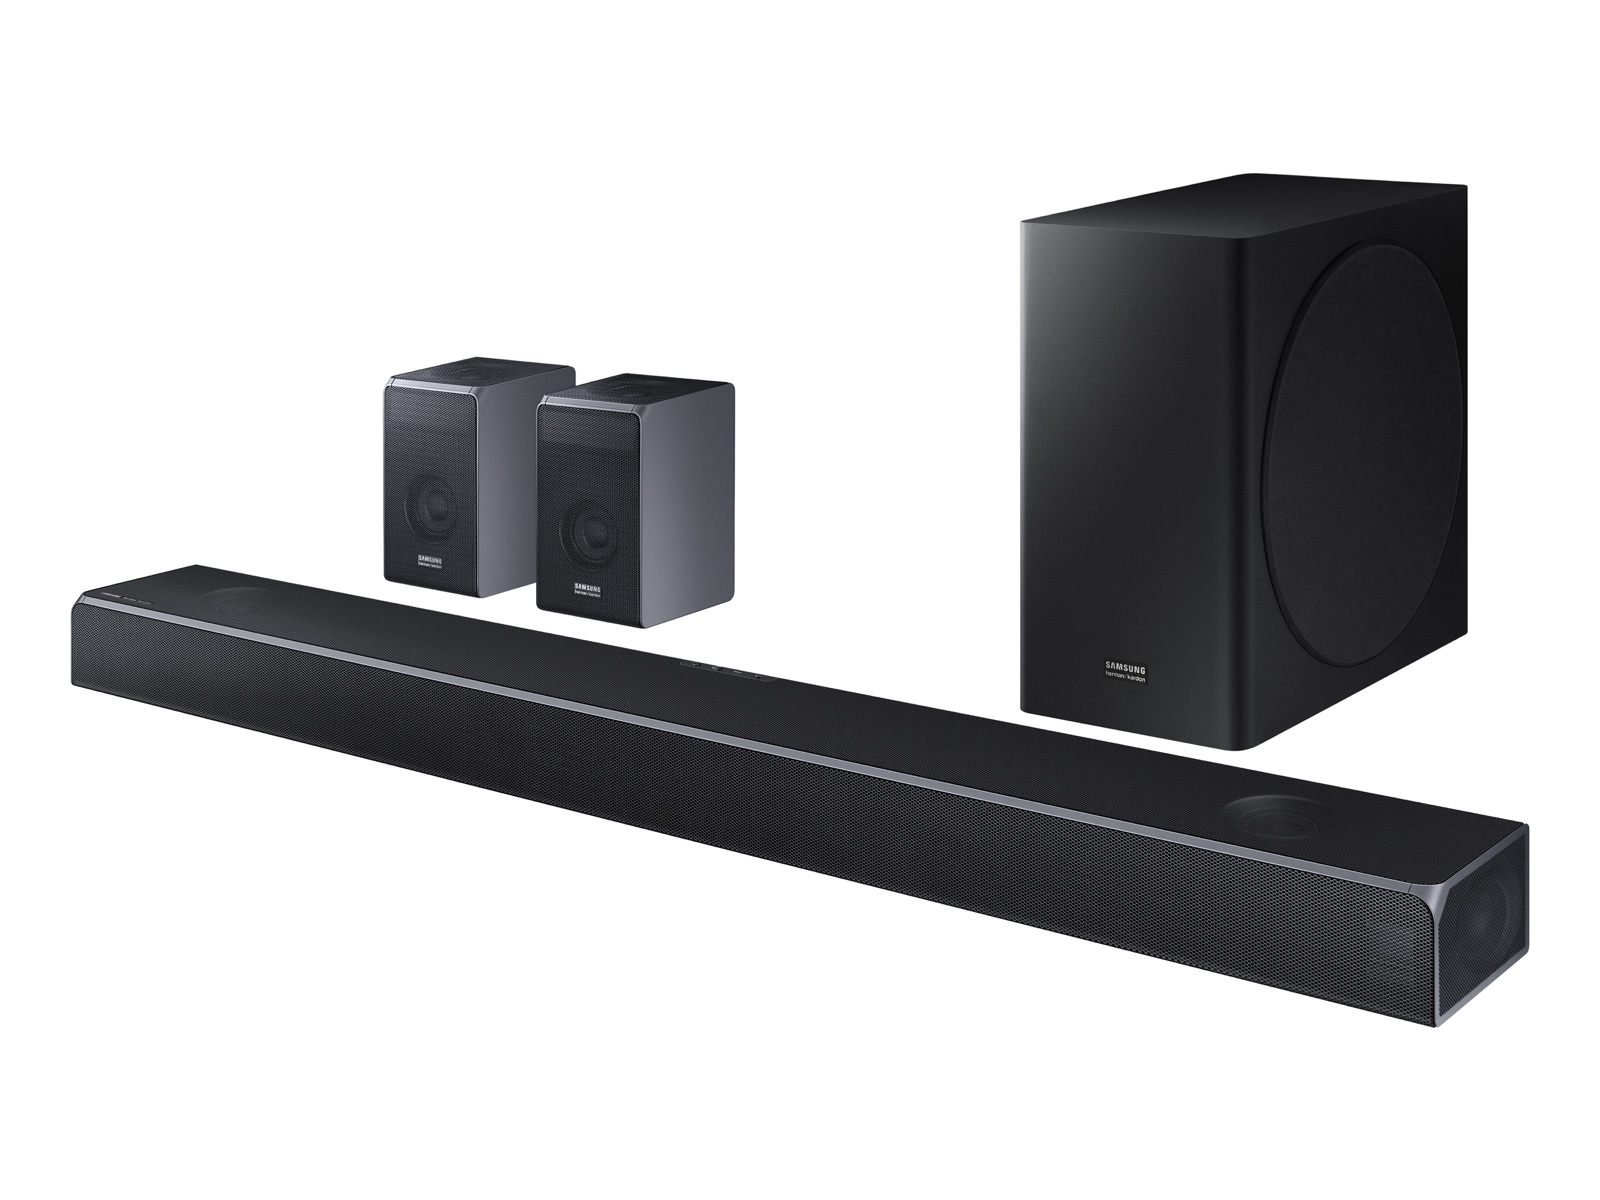 Samsung HW-Q90R Harman Kardon 7.1.4ch Soundbar with Wireless Subwoofer and Rear Speaker Kit